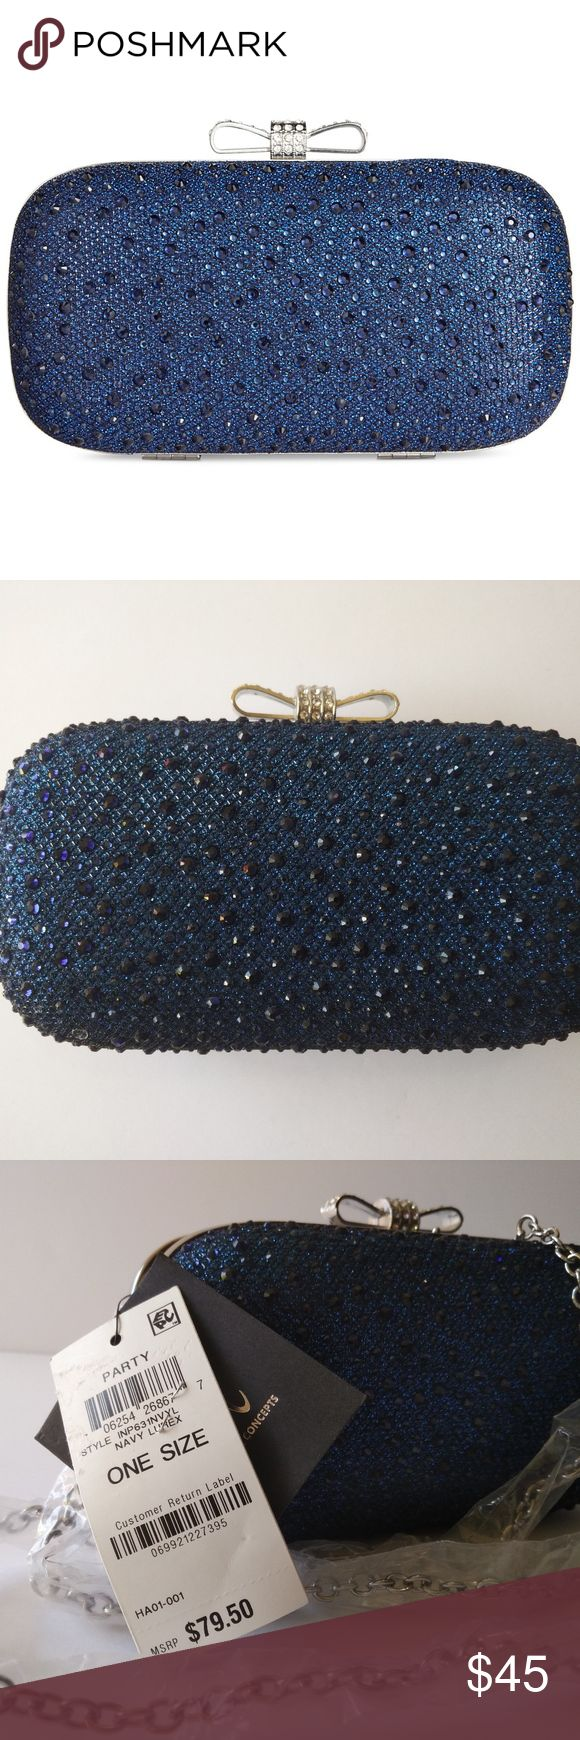 """INC International Concepts Evie Clutch Navy Lurex Wrapped up and finished with a bow, this shimmering, palm-perfect clutch by INC International Concepts packs up just the essentials for a glamorous evening. New with tags.  7""""W x 4""""H x 2-1/2""""D Interior accommodates iPhone 6 or smaller and similar 24""""L detachable drop-in chain strap Rhinestone bow clasp closure INC International Concepts Bags Clutches & Wristlets"""